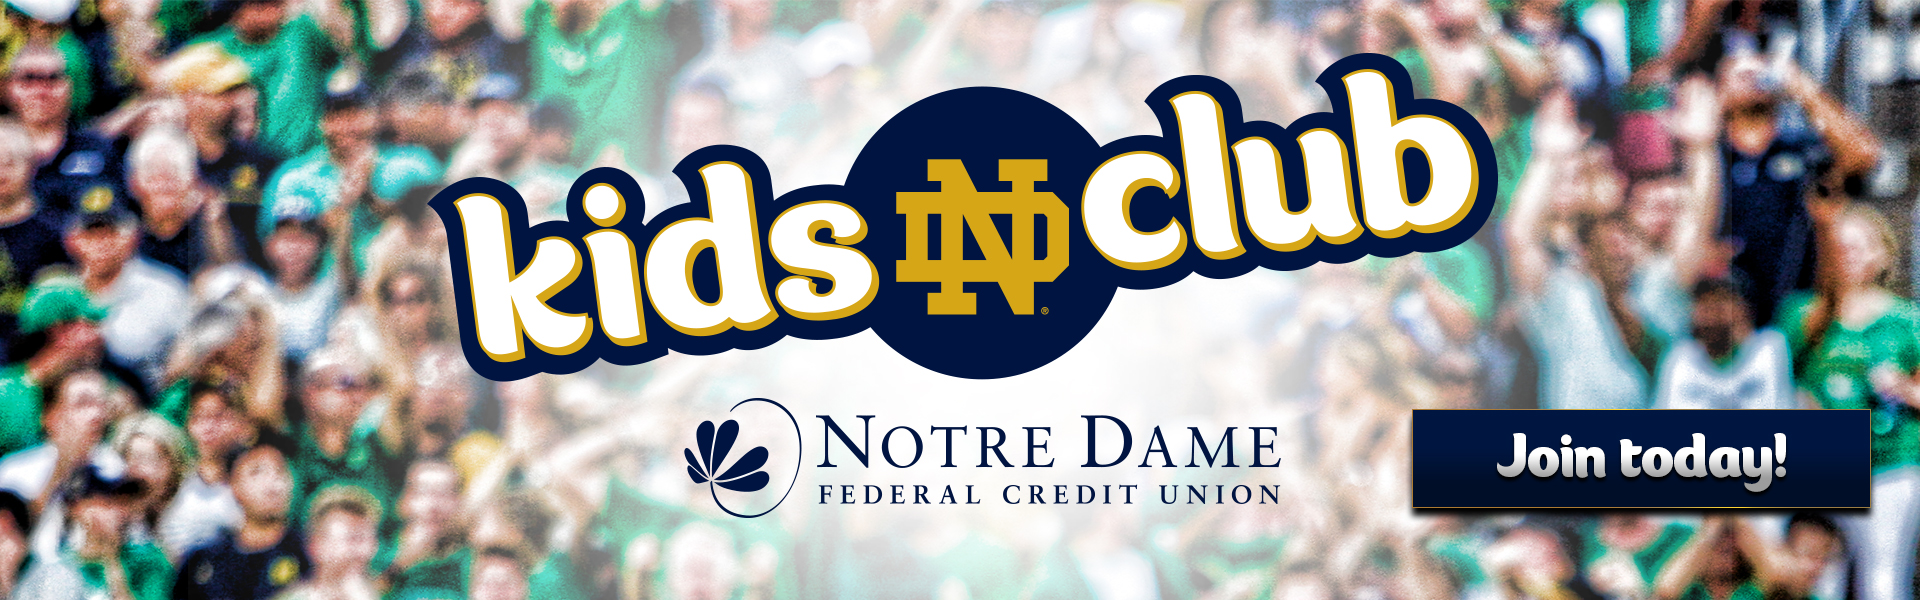 ND Kids Club. Notre Dame FCU. Join Today